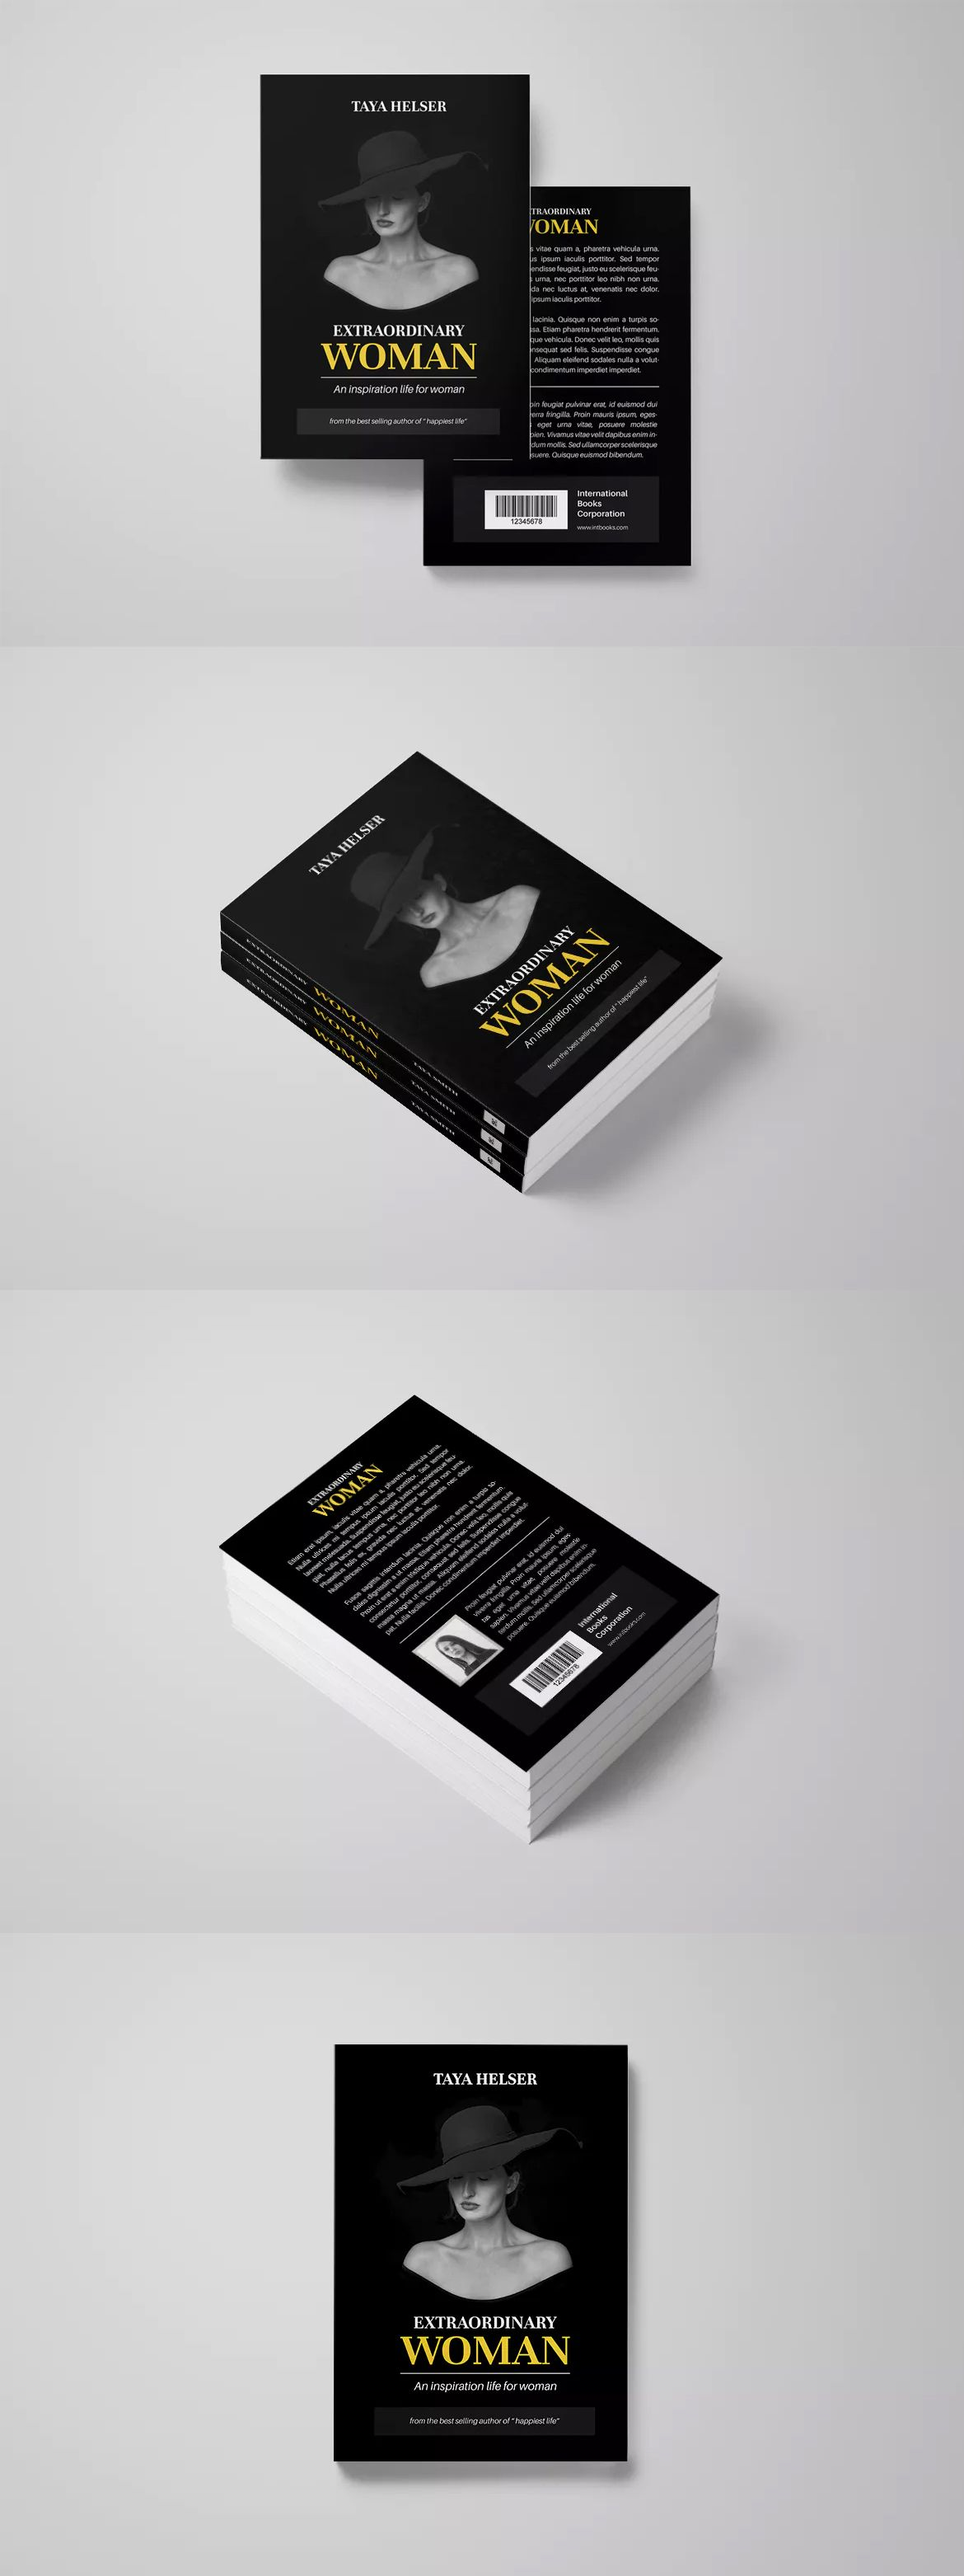 book cover template psd book cover templates pinterest cover